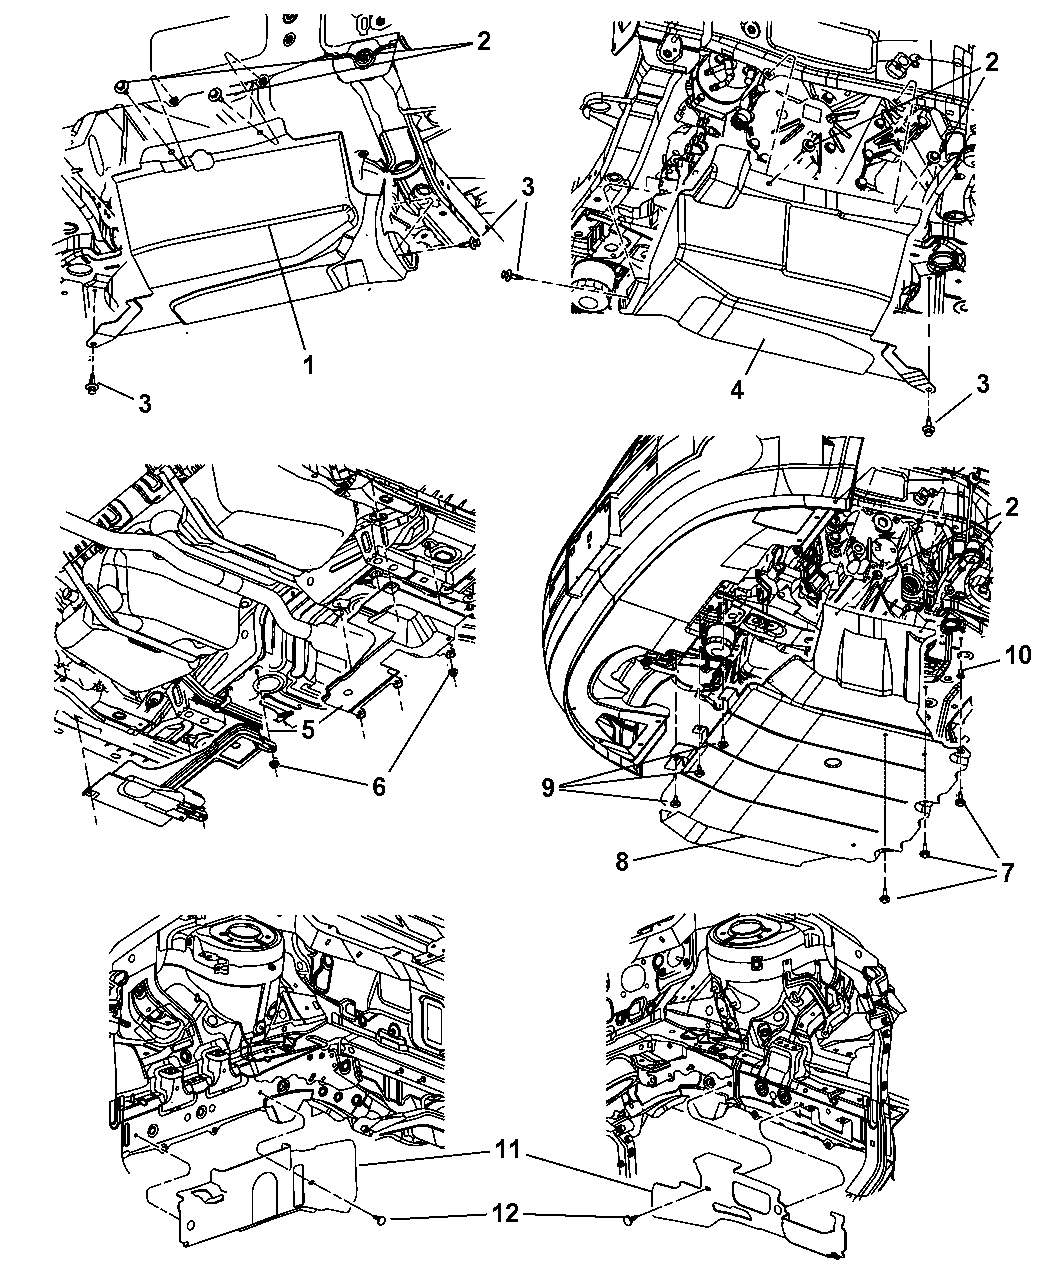 Parts Diagram 2007 Dodge Caliber Sxt Com